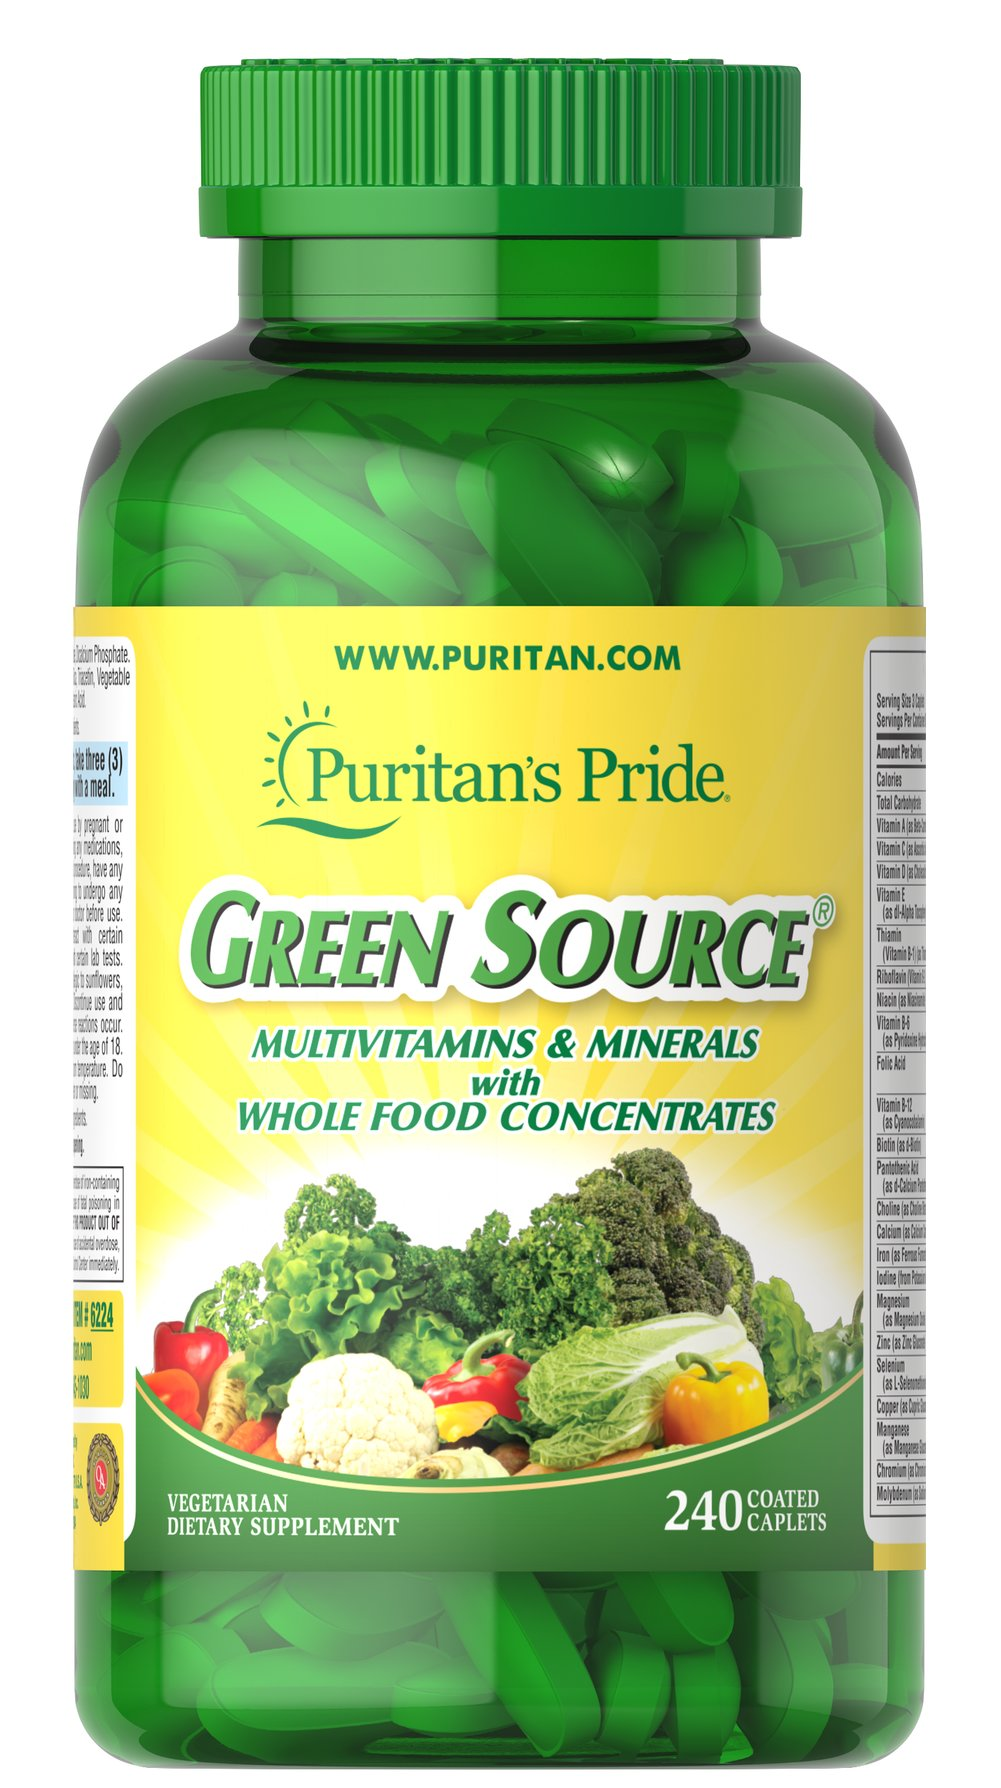 Green Source® Multivitamin & Minerals <p>This concentrated formula contains potent food source nutrients to provide essential vitamins, minerals, enzymes and amino acids. It also provides all the naturally occurring active constituents of whole foods.</p> 240 Caplets  $63.79